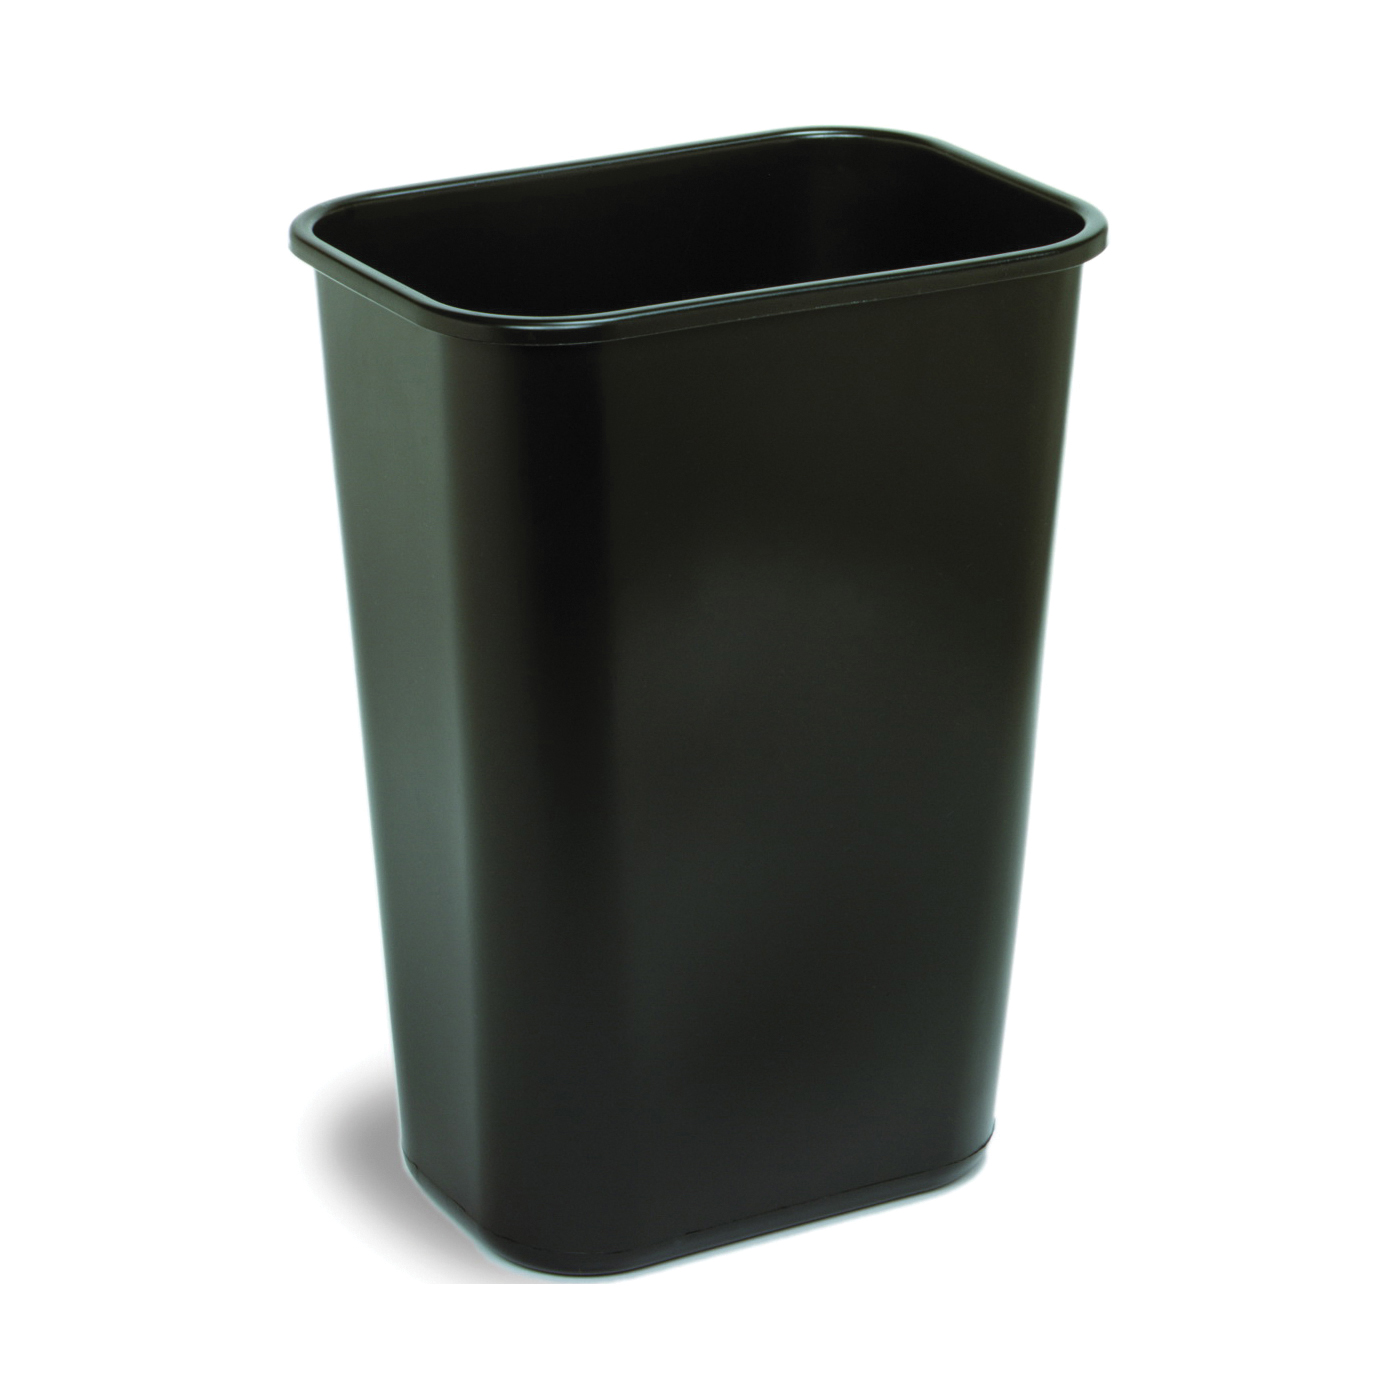 Picture of CONTINENTAL COMMERCIAL 4114BK Waste Basket, 41.125 qt Capacity, Rectangular, Plastic, Black, 11 in W, 15-1/4 in D